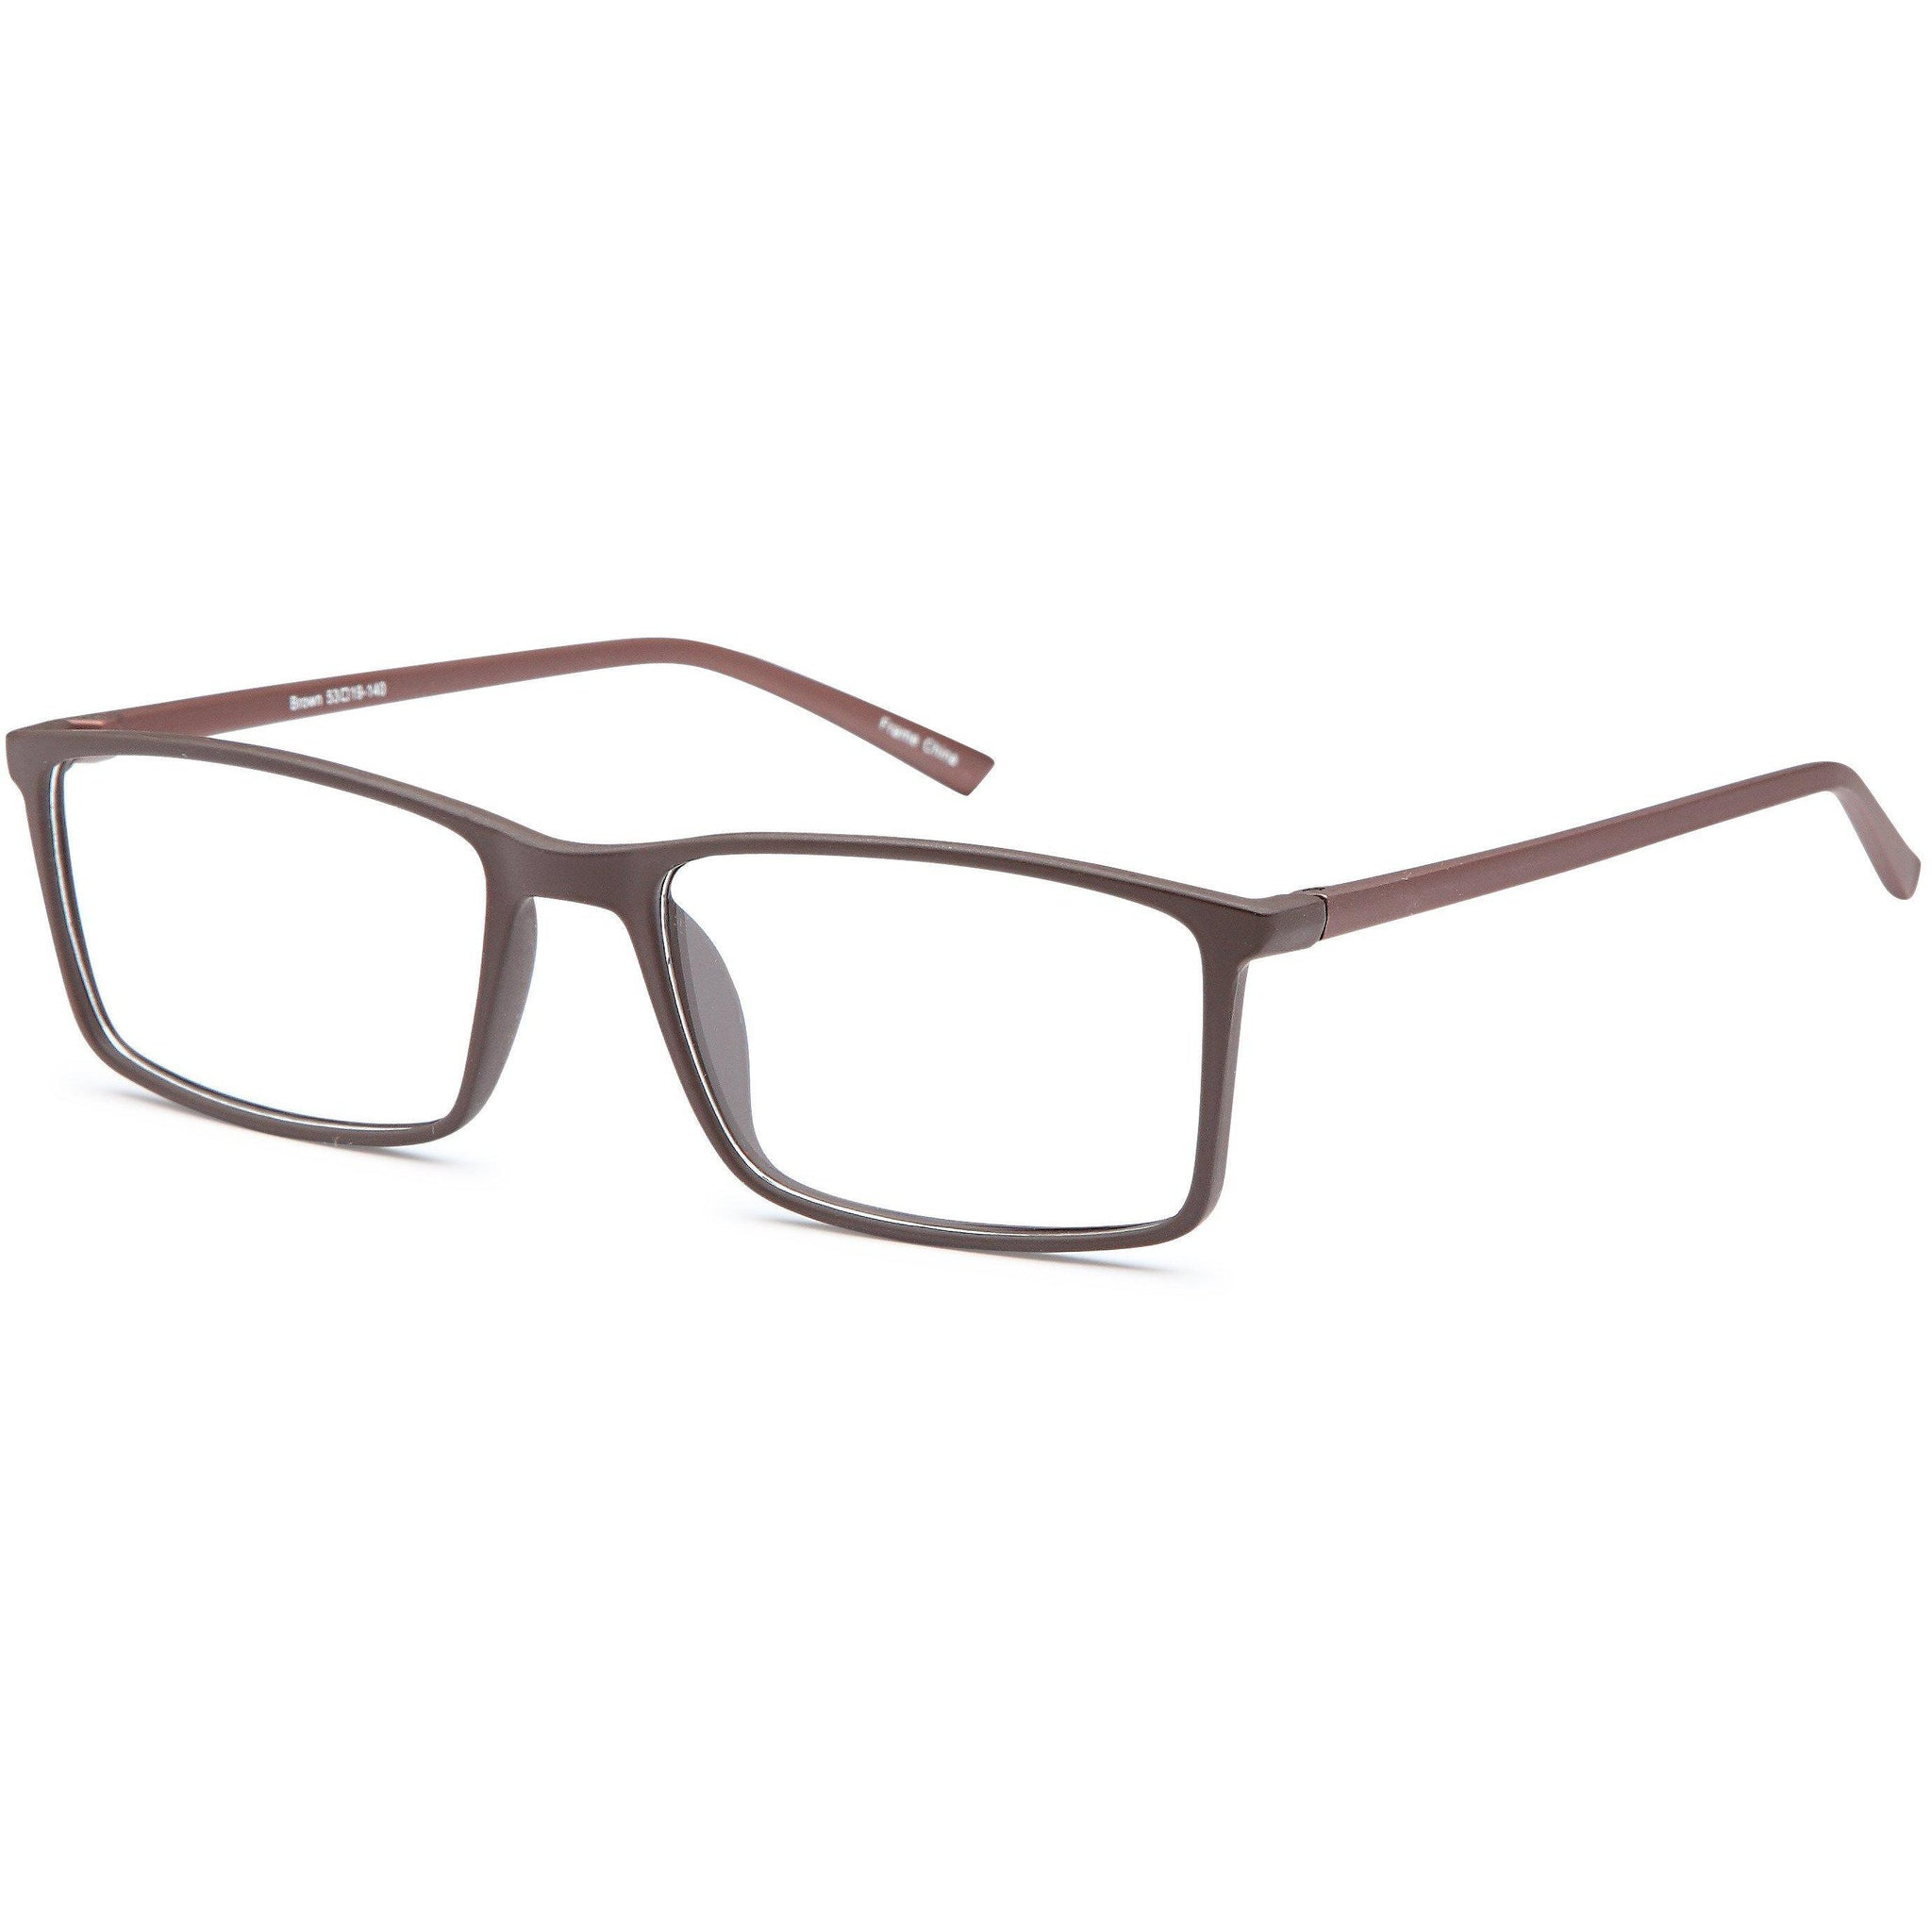 The Icons Prescription Glasses ETHAN Eyeglasses Frame